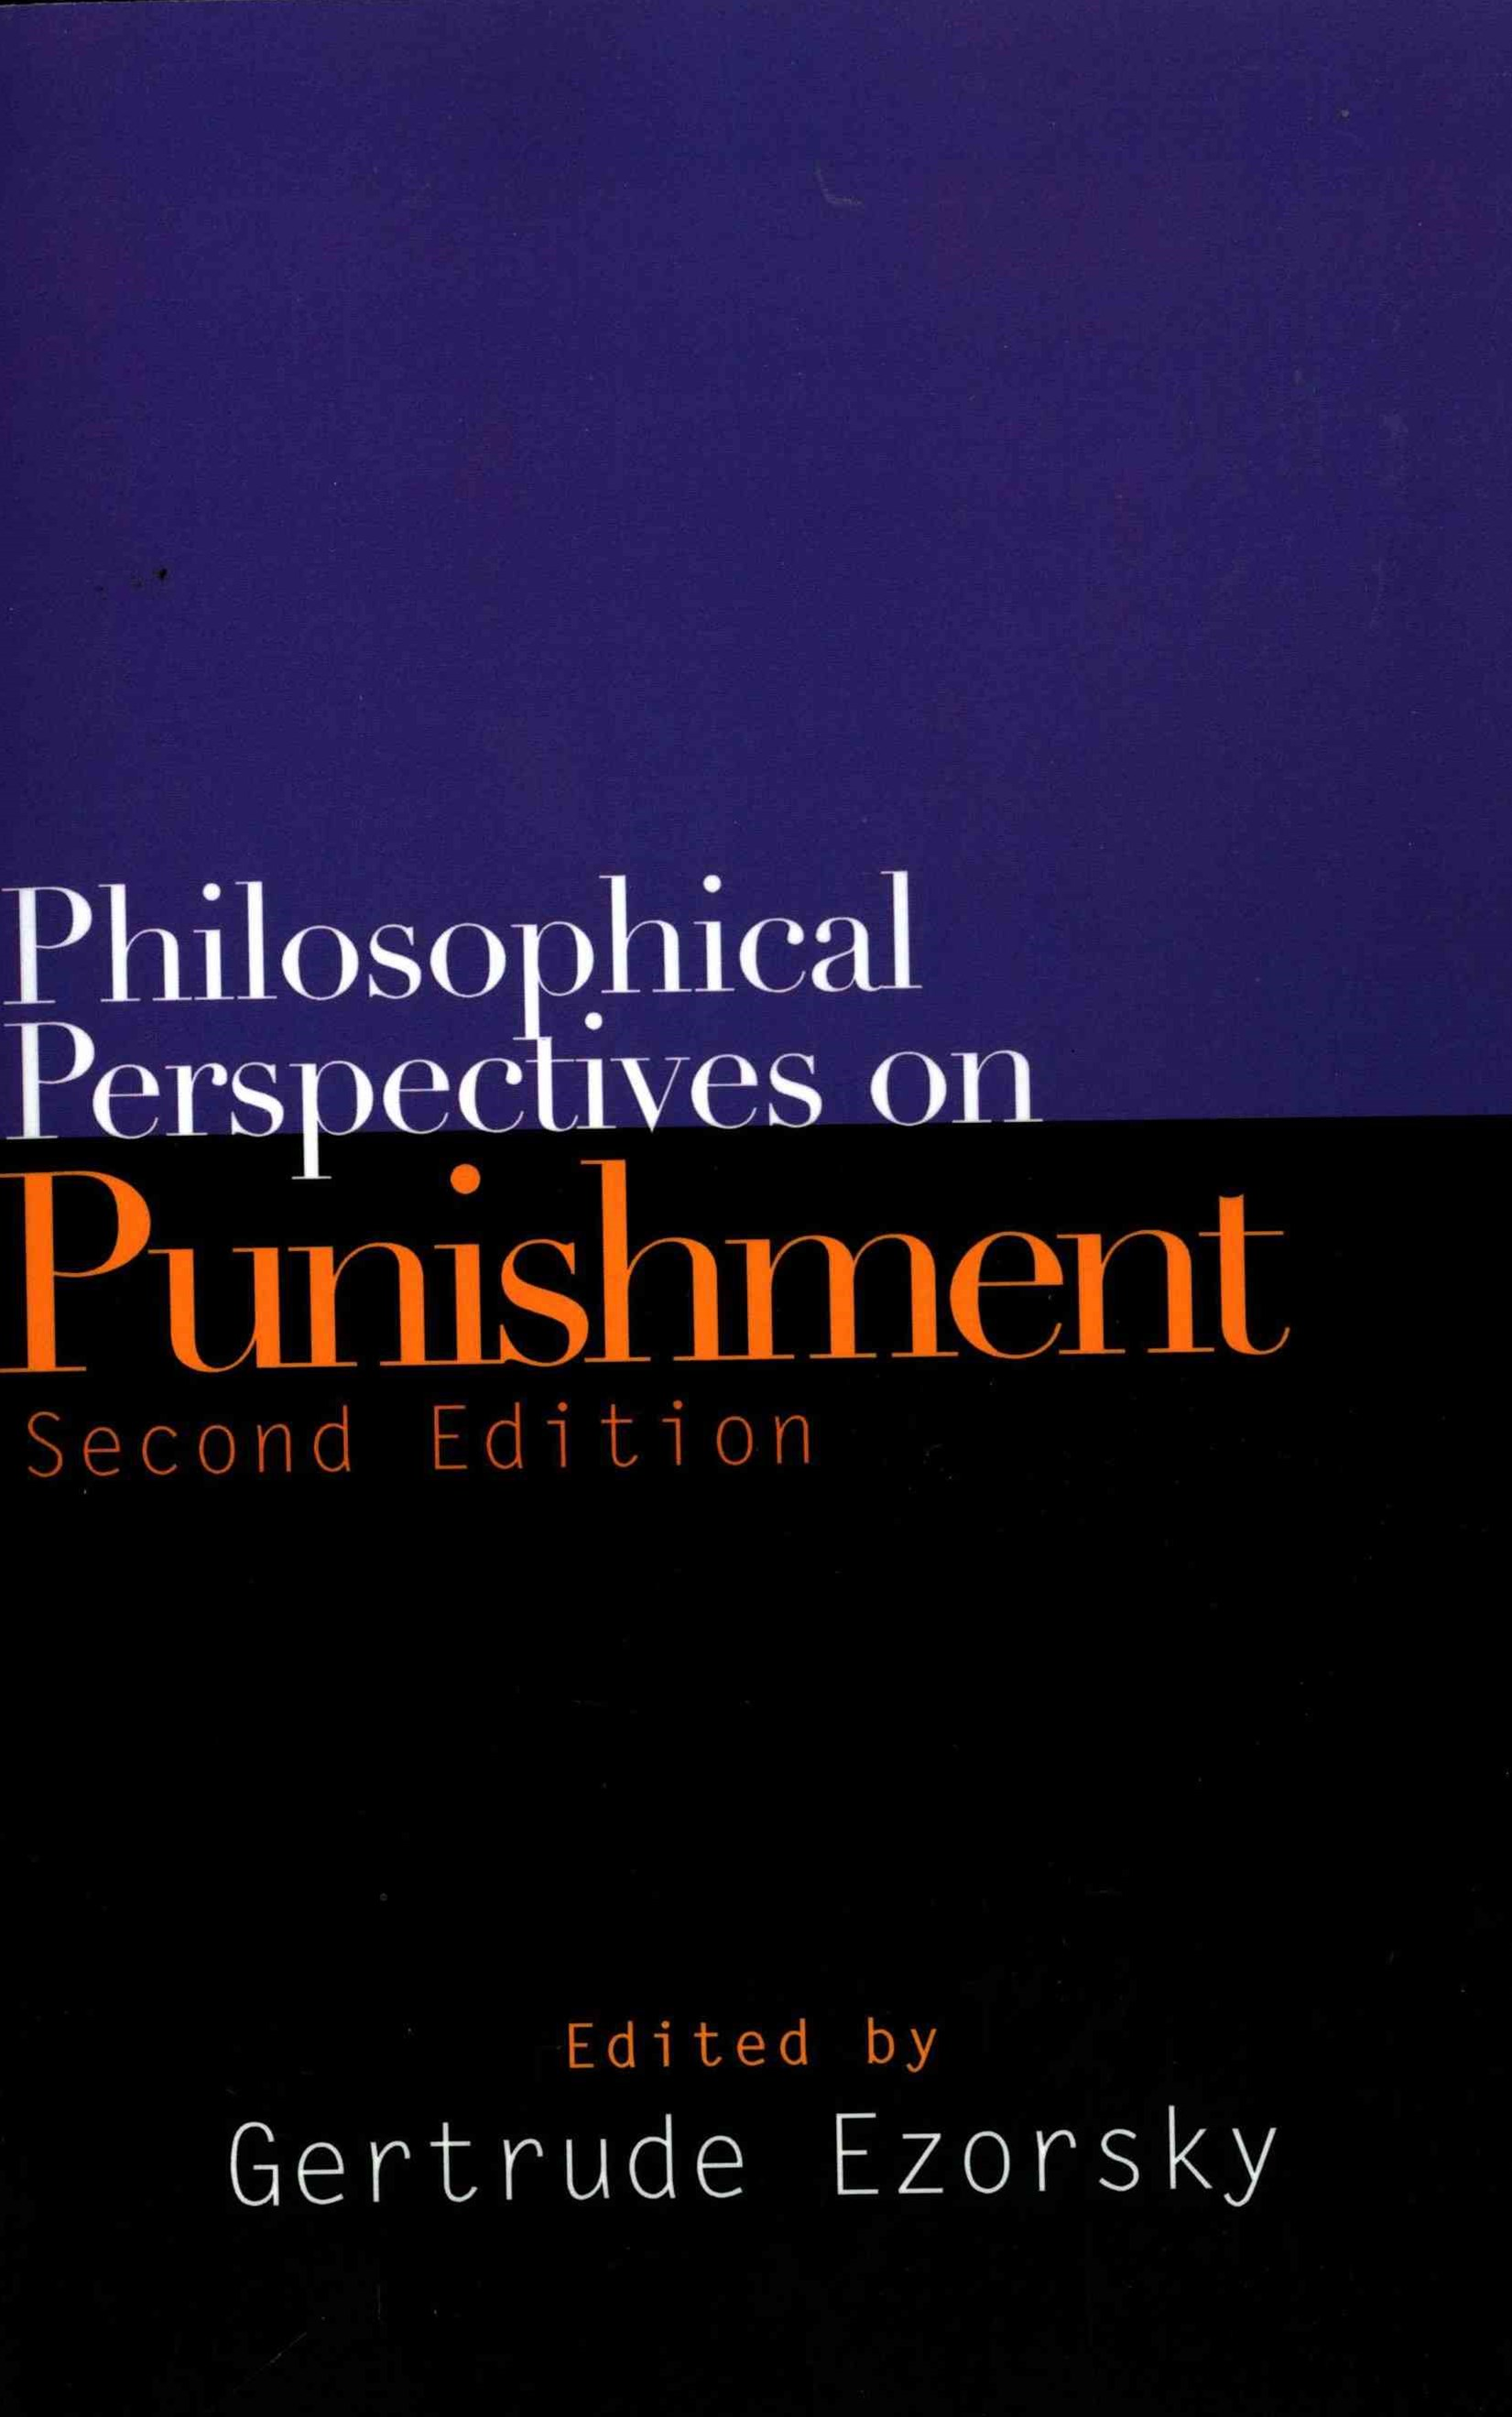 Philosophical Perspectives on Punishment, Second Edition